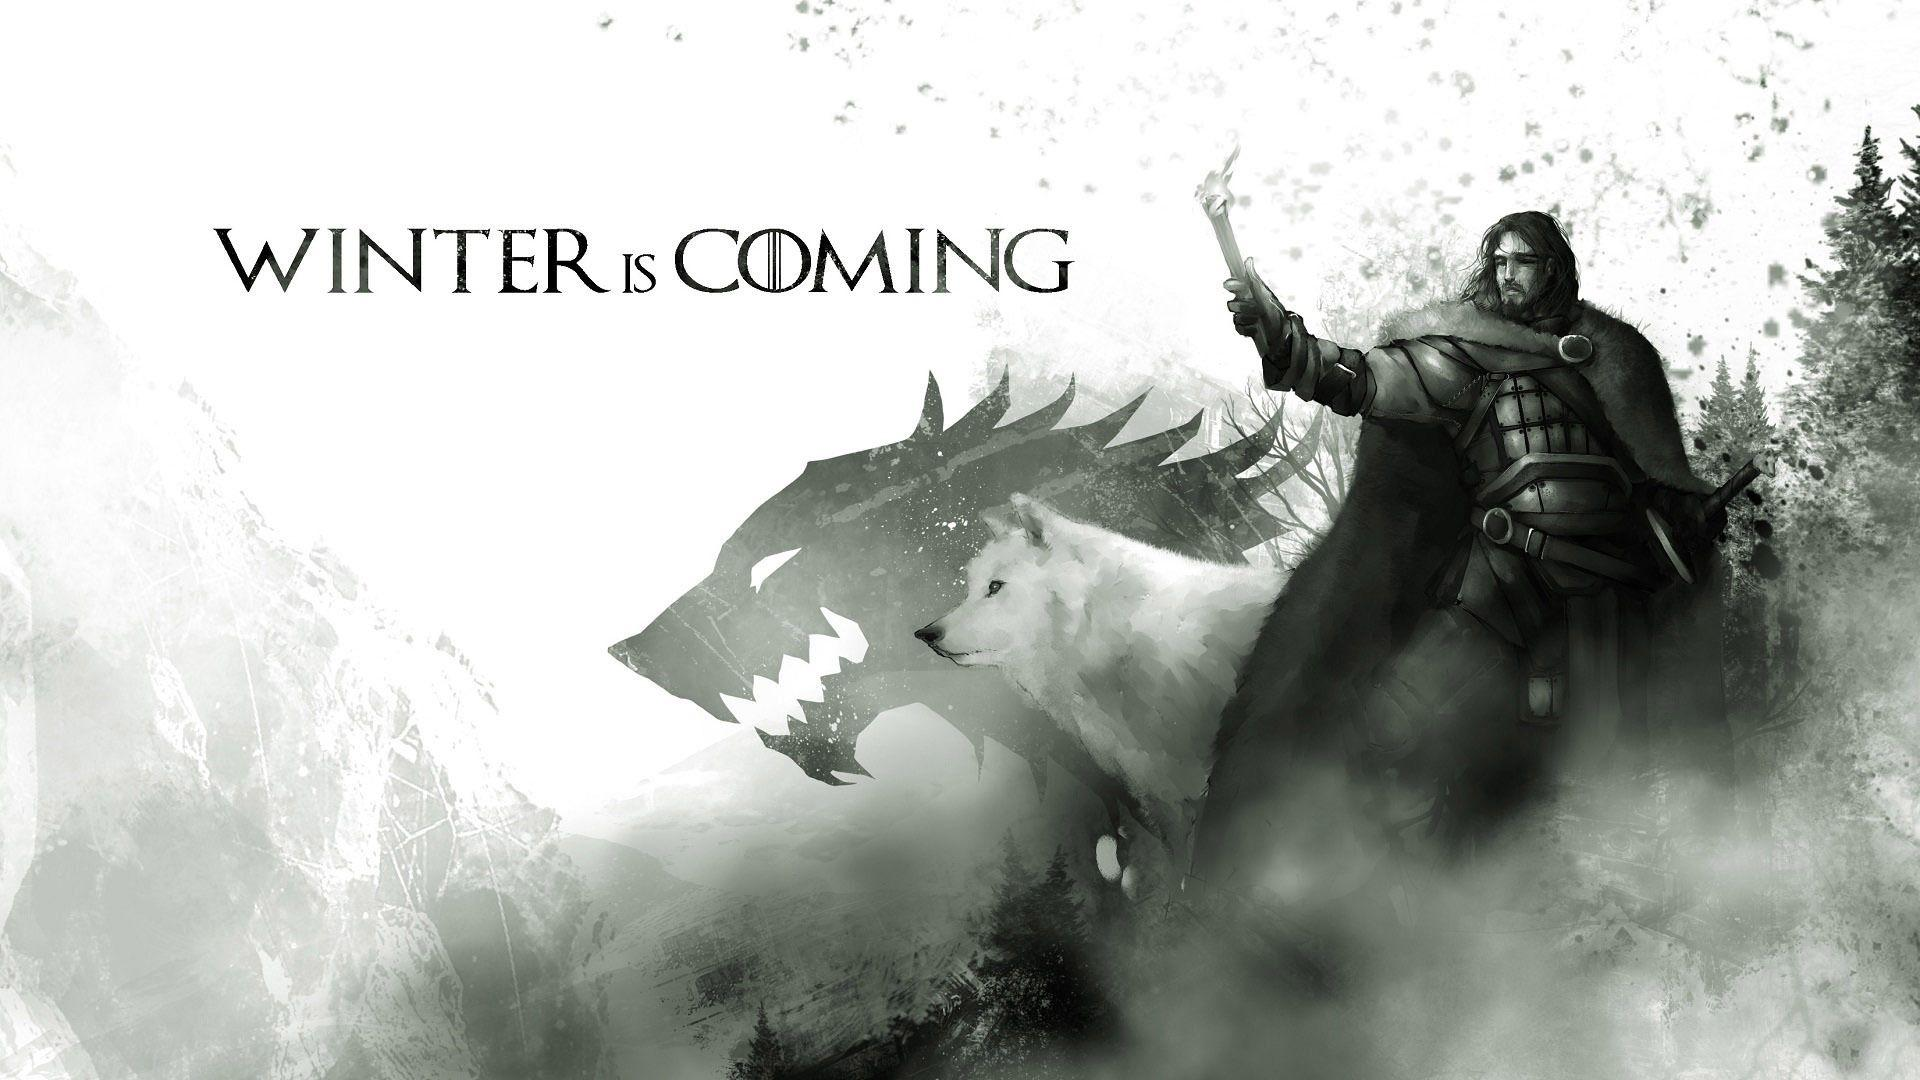 Game of Thrones wallpapers 5